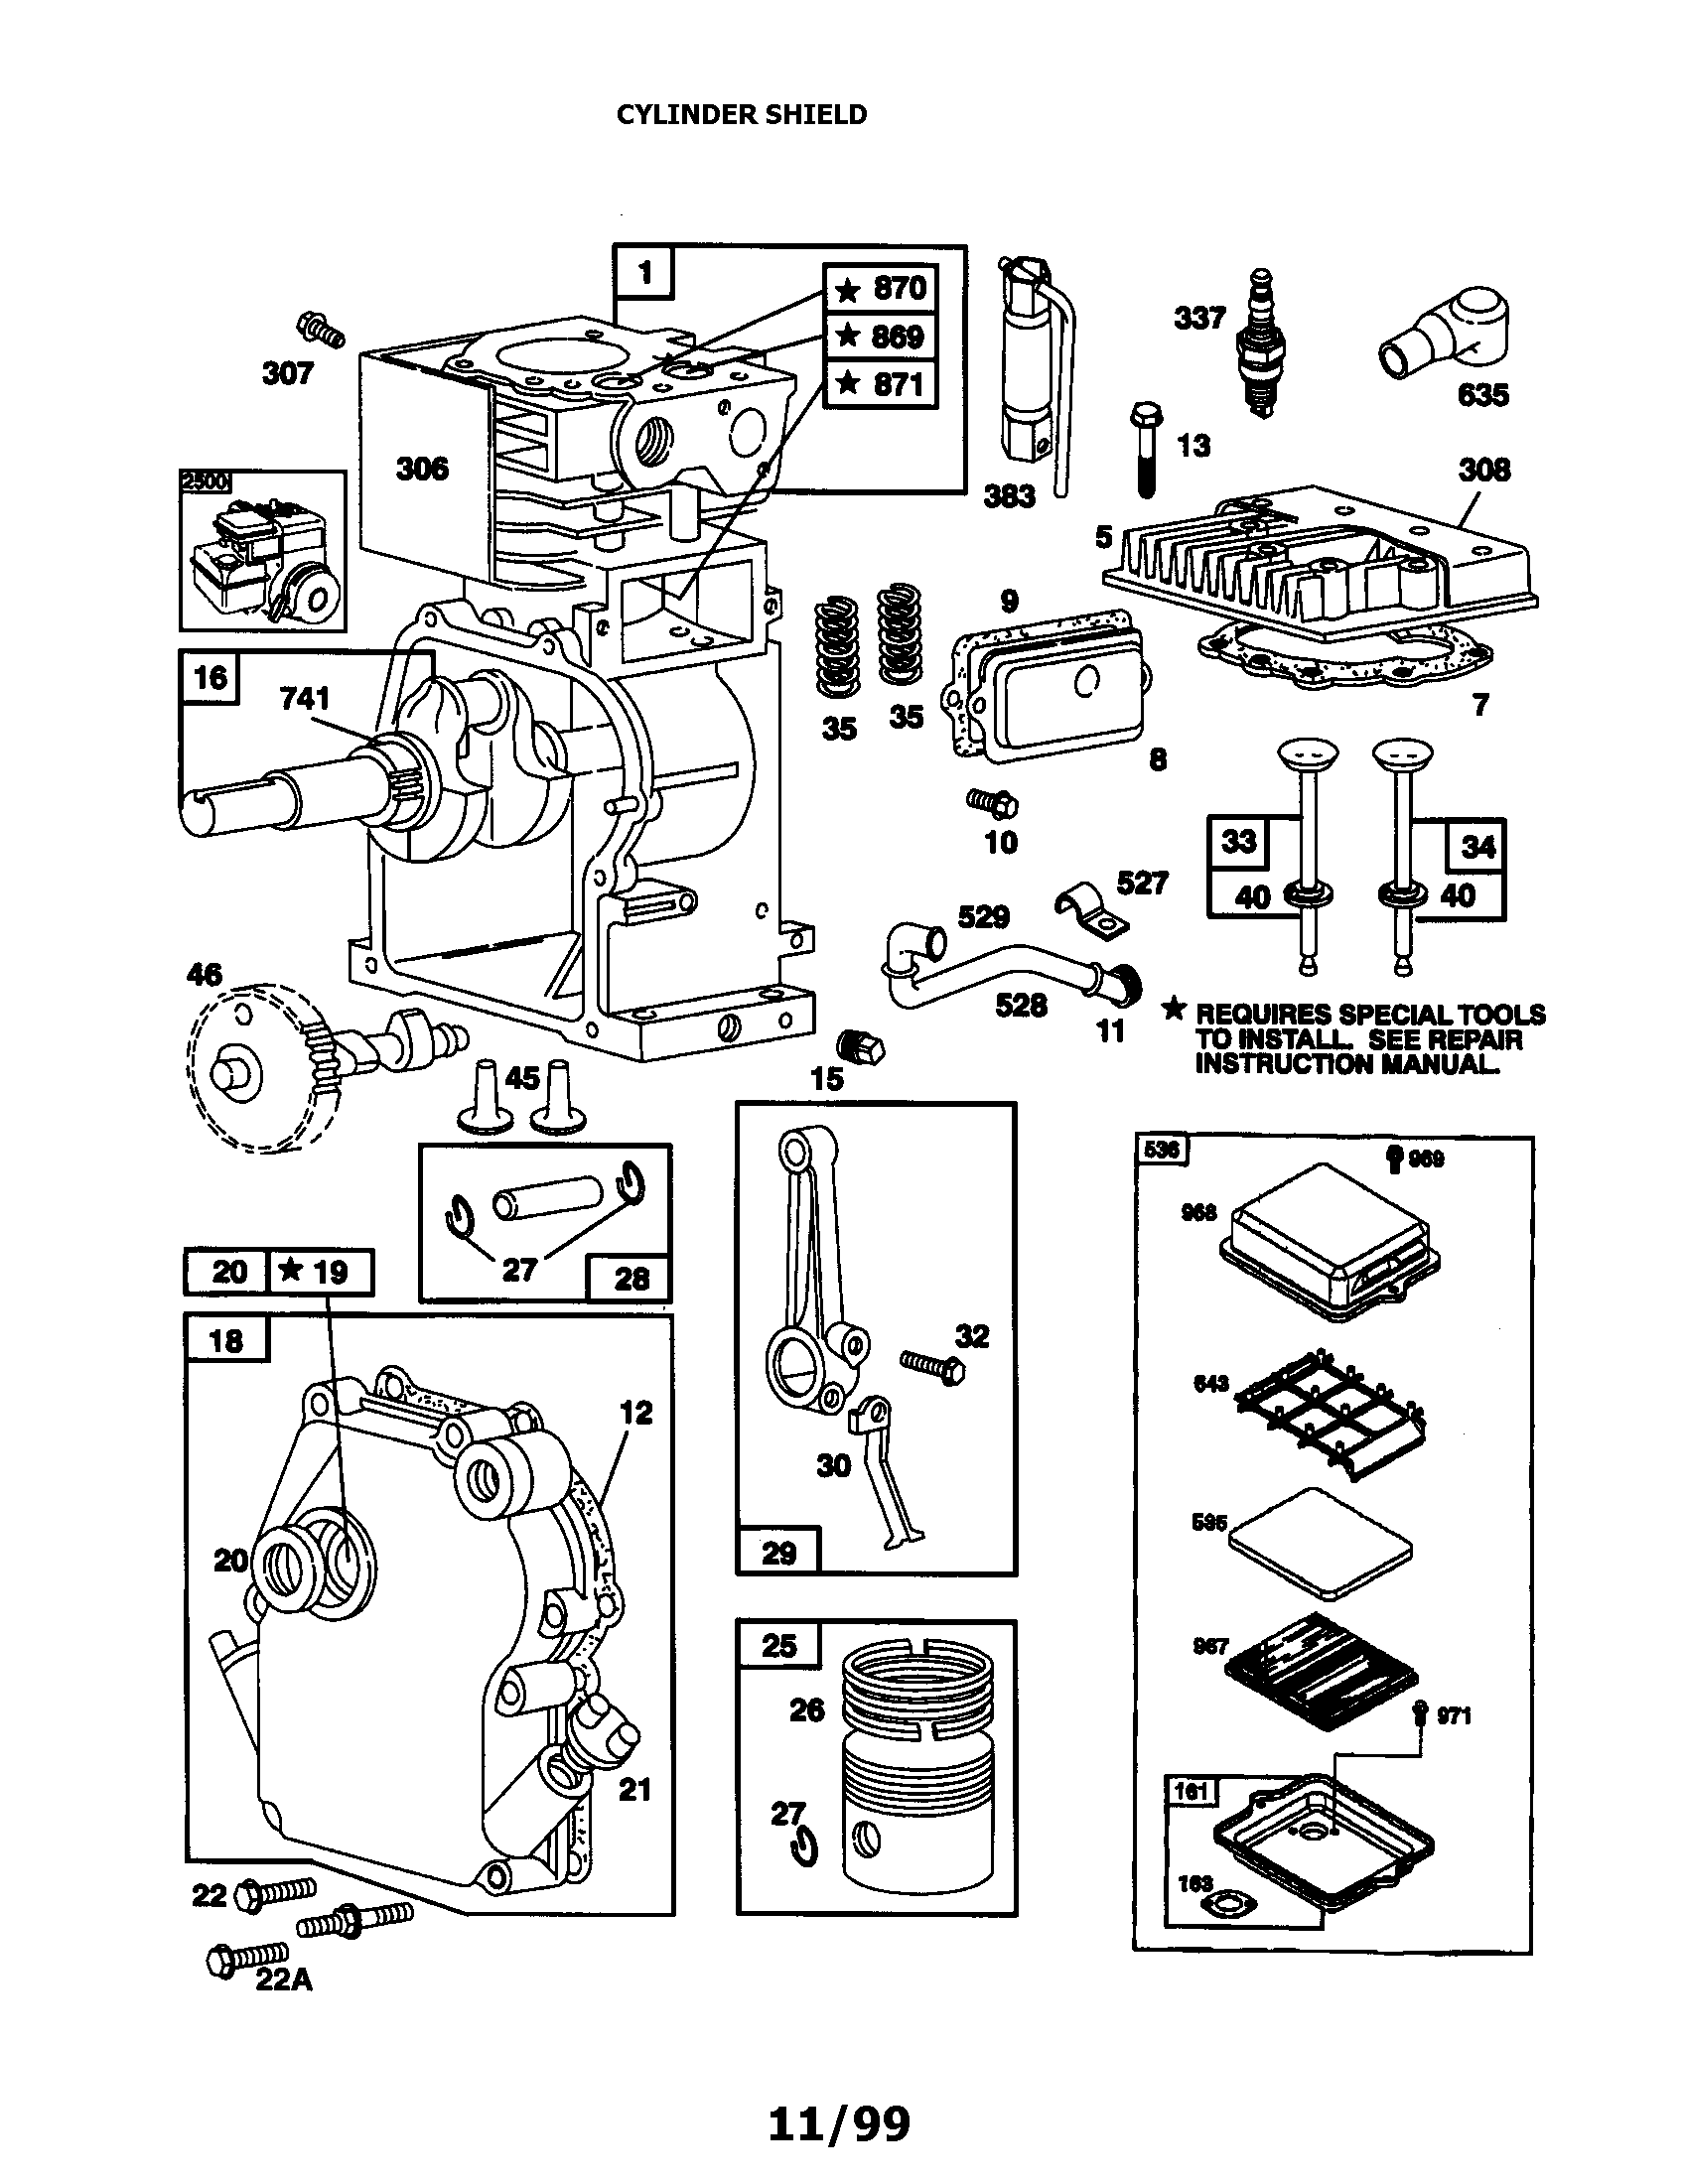 Engine Wiring Schematic Gx on engine control schematics, ford diagrams schematics, engine cooling, water pump schematics, engine power, computer schematics, engine bearings schematics, engine blue prints, ignition coil schematics, engine drawings, engine wiring harness,